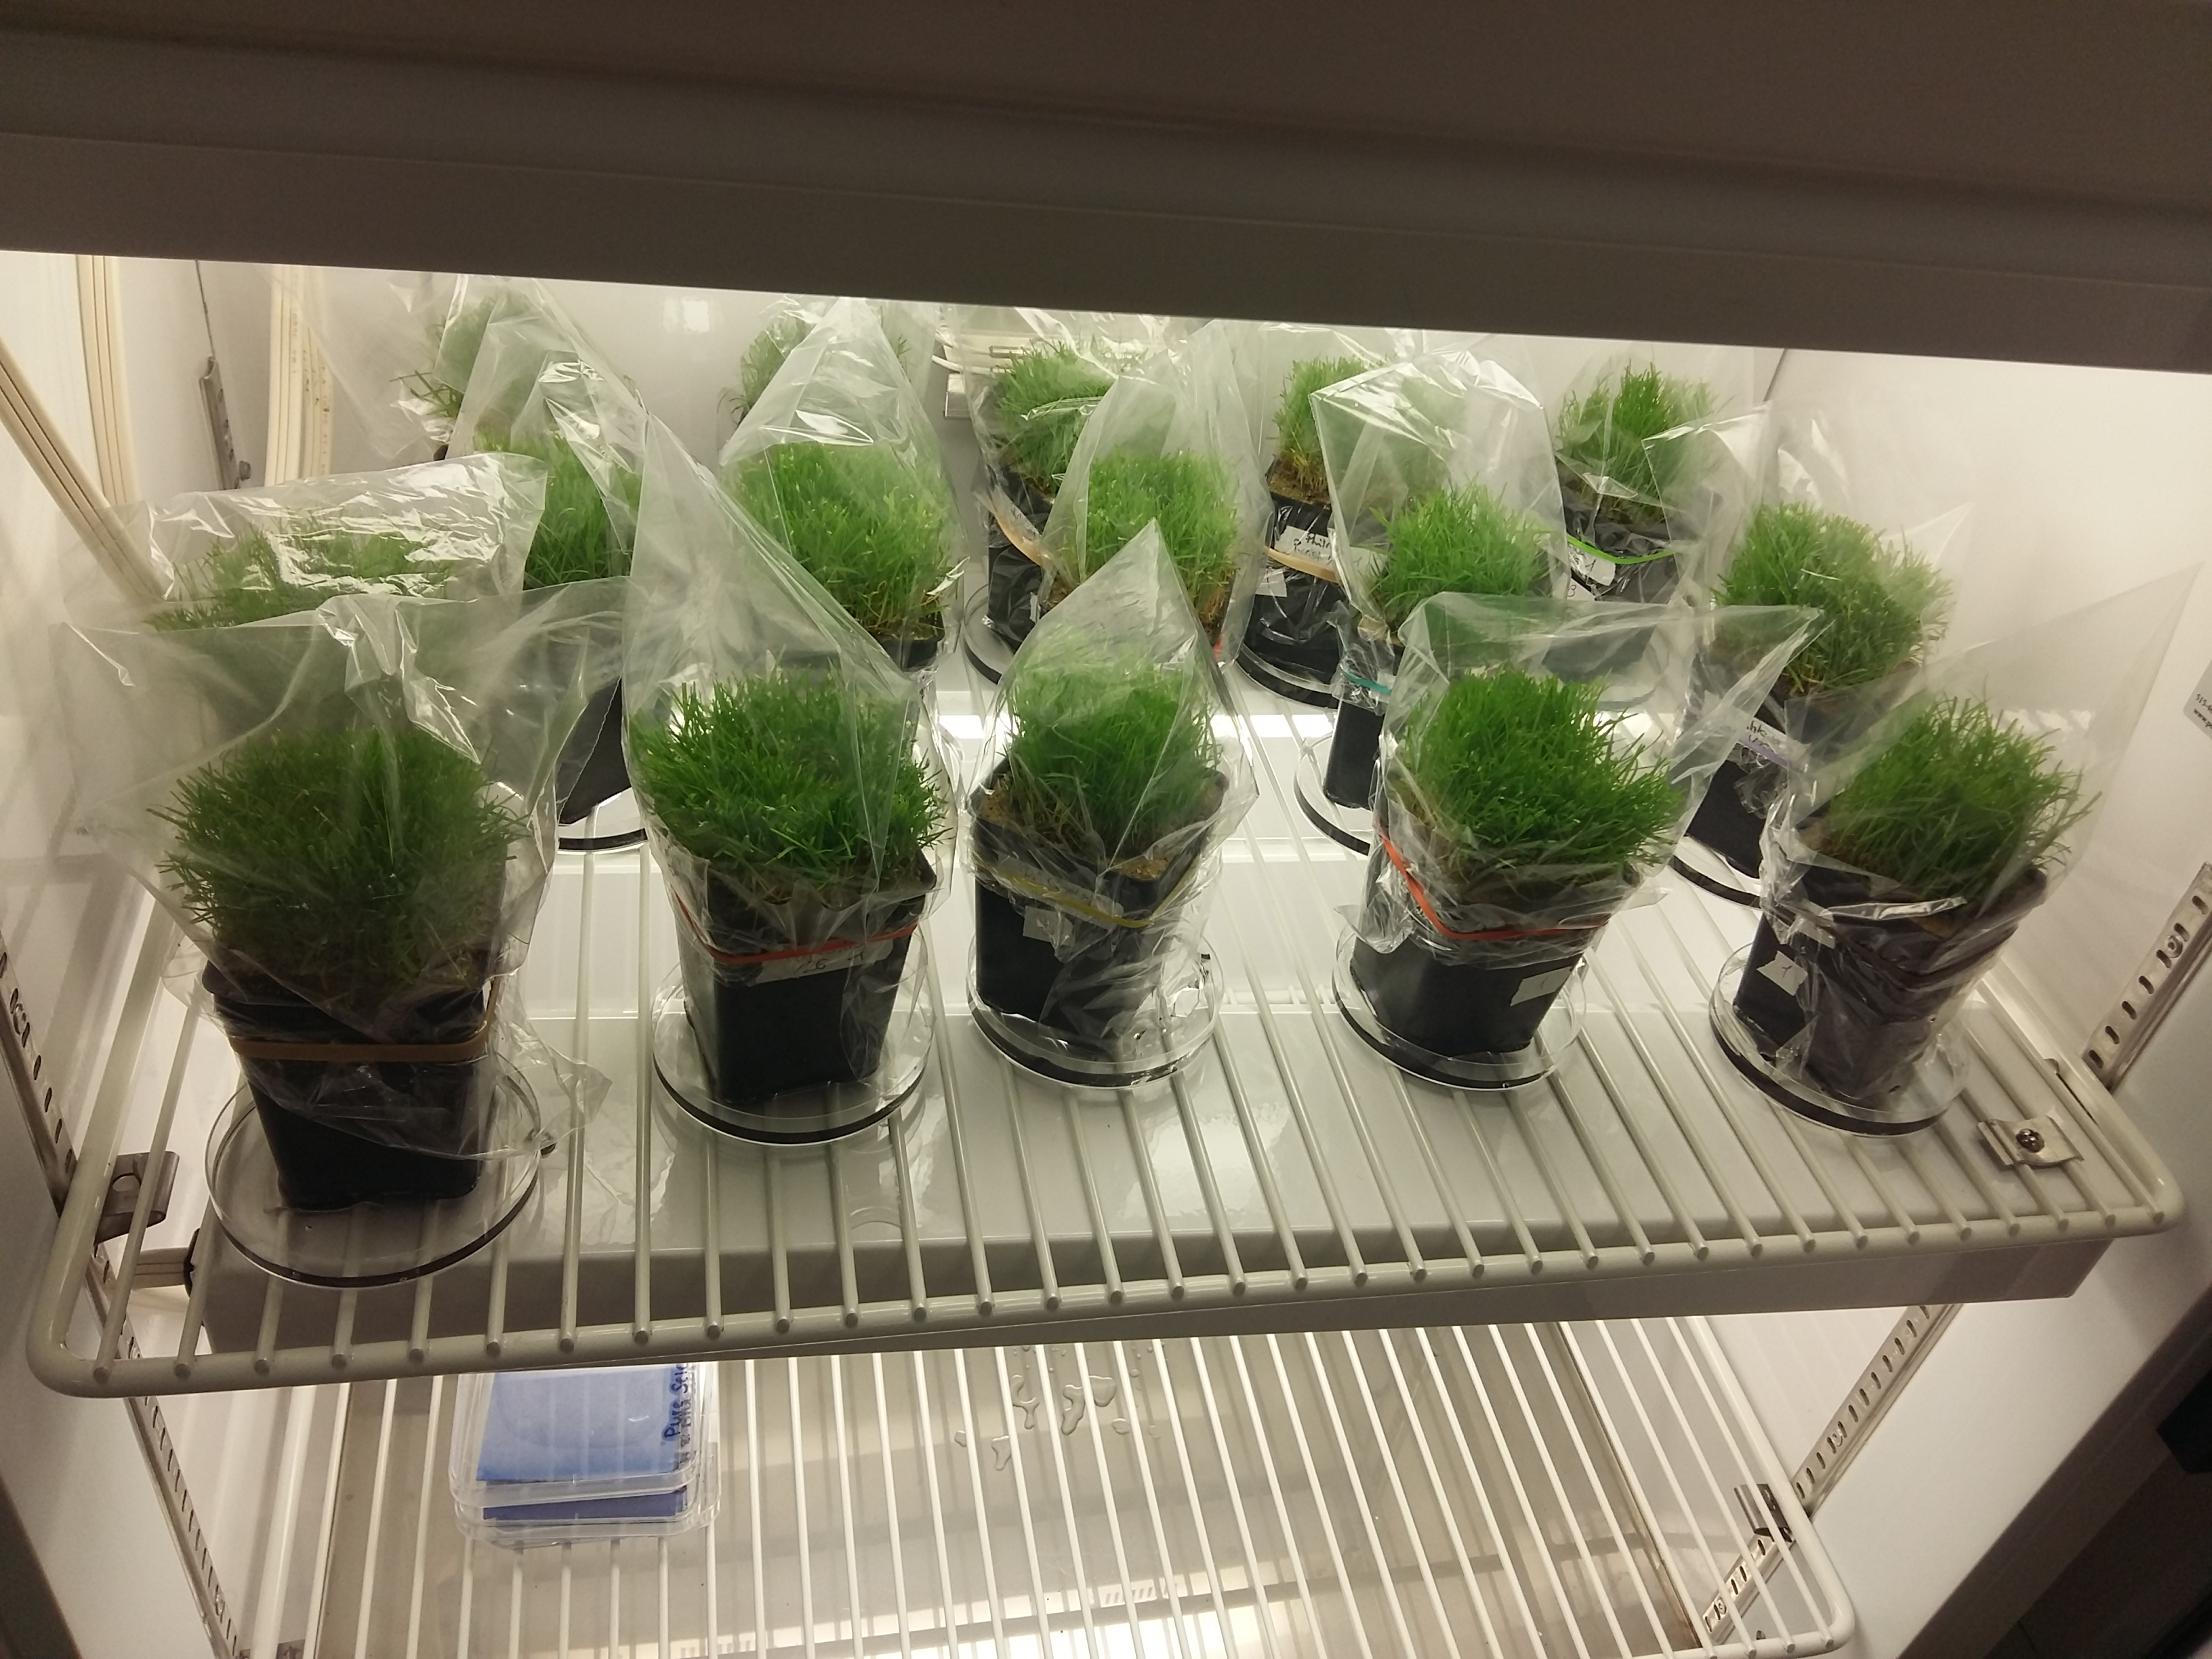 Inoculated plants in the growth chamber